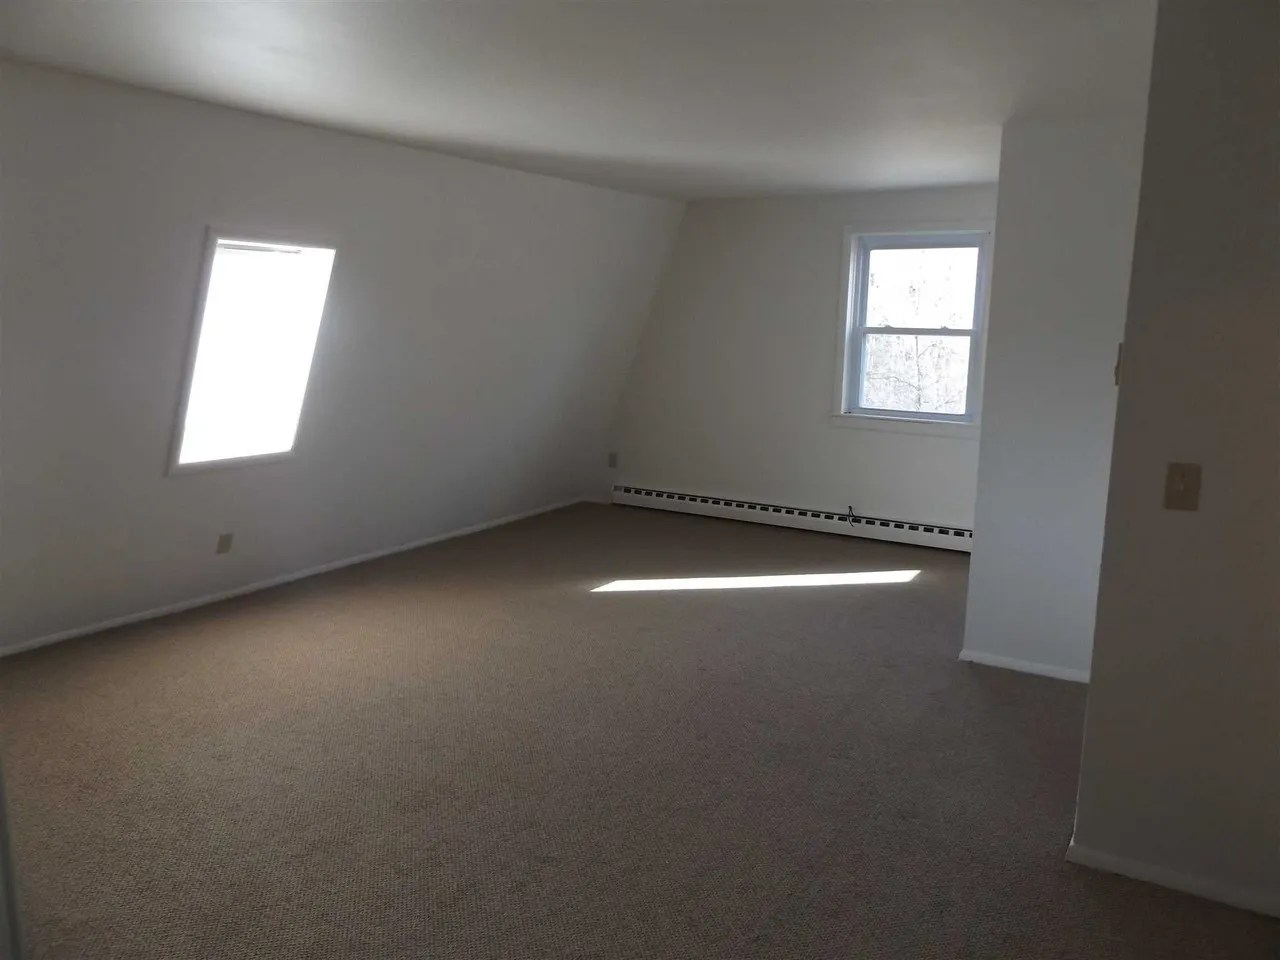 Apartments For Rent Hopewell Junction New York 2429 State Rte 55 Hopewell Junction Ny 12533 2 Bedroom Apartment